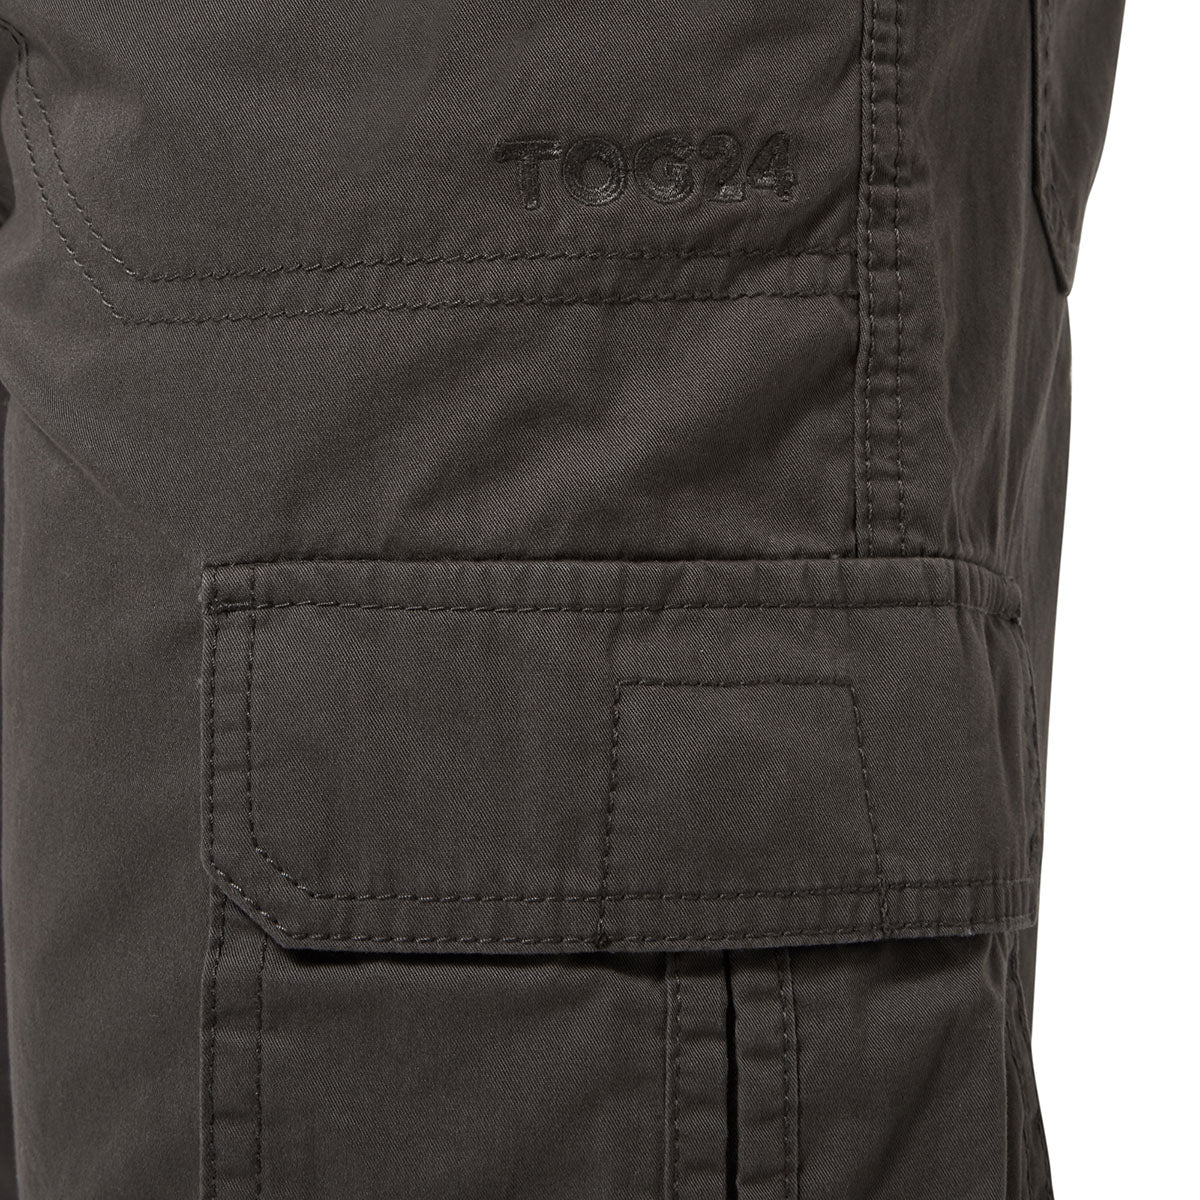 Kalahari Mens Cargo Shorts - Thunder Grey image 4